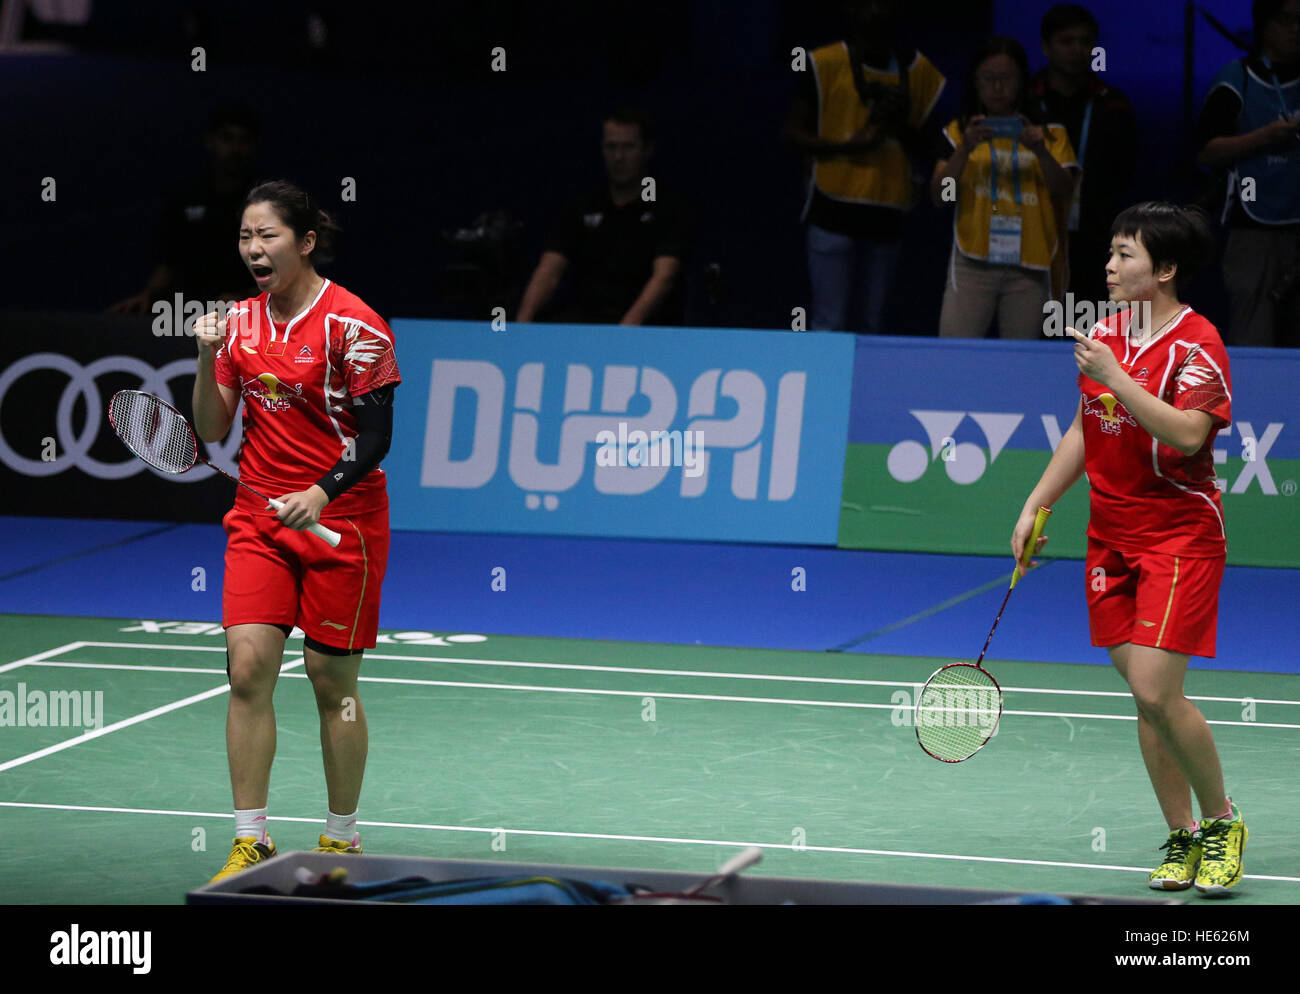 Dubai United Arab Emirates 18th Dec 2016 Chen Qingchen and Jia